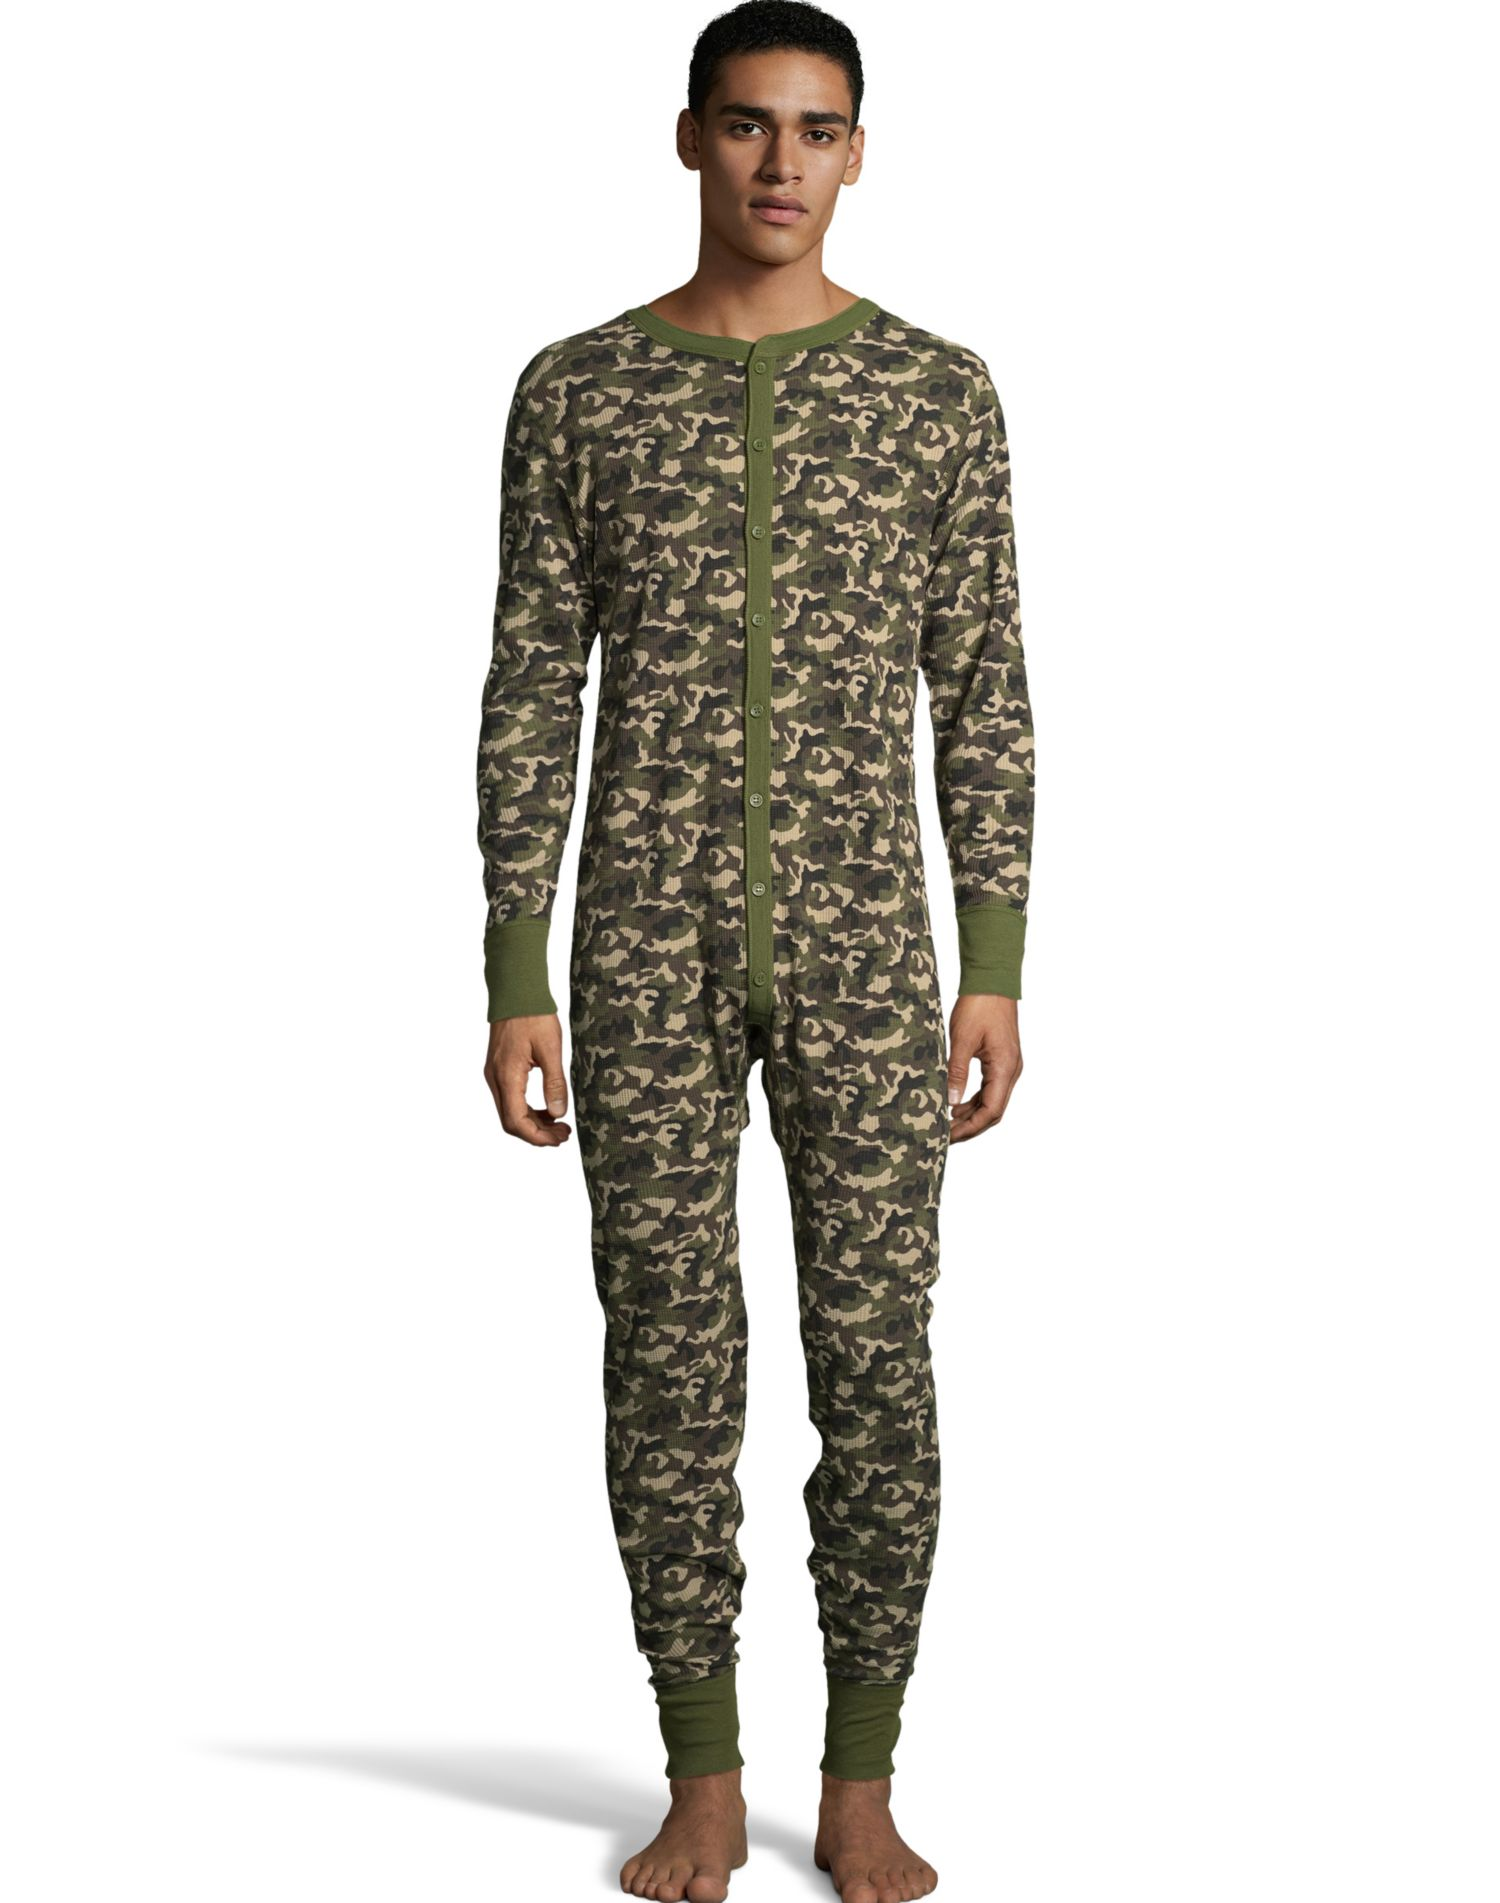 Hanes Mens Waffle Knit Thermal Union Suit, S, Camo Green